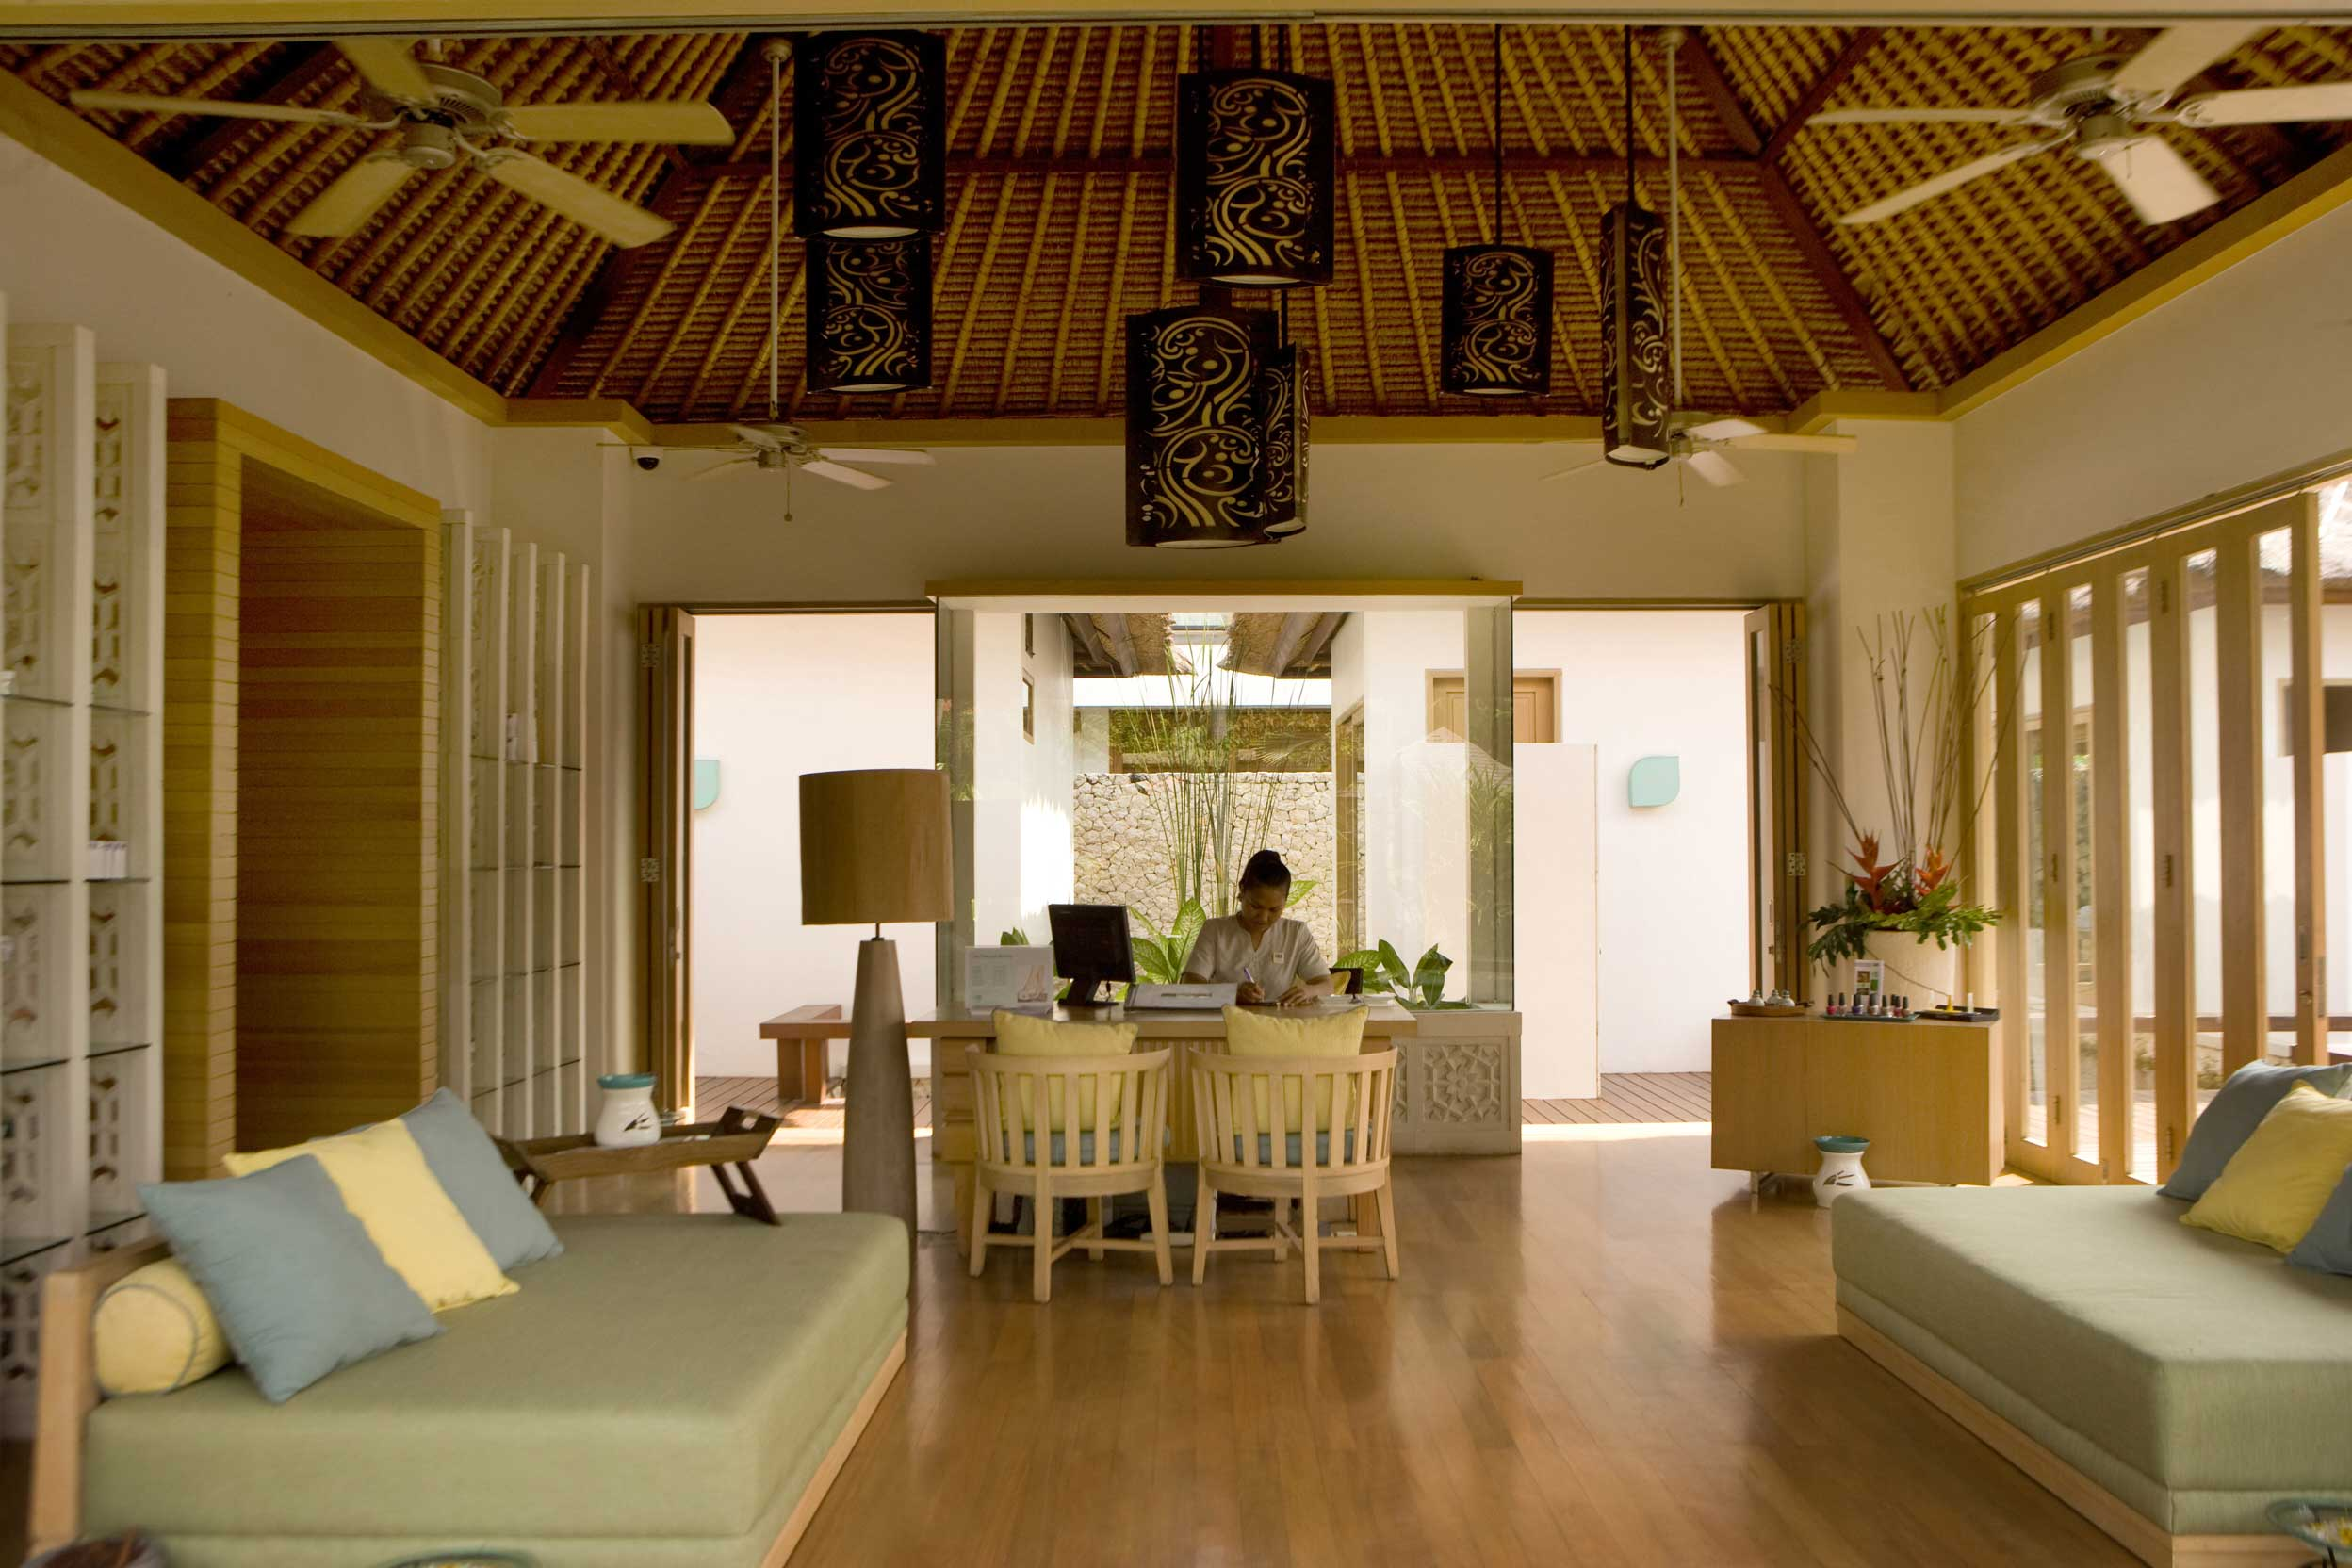 Tea Tree Spa Lobby | Holiday Inn Resort Baruna Bali